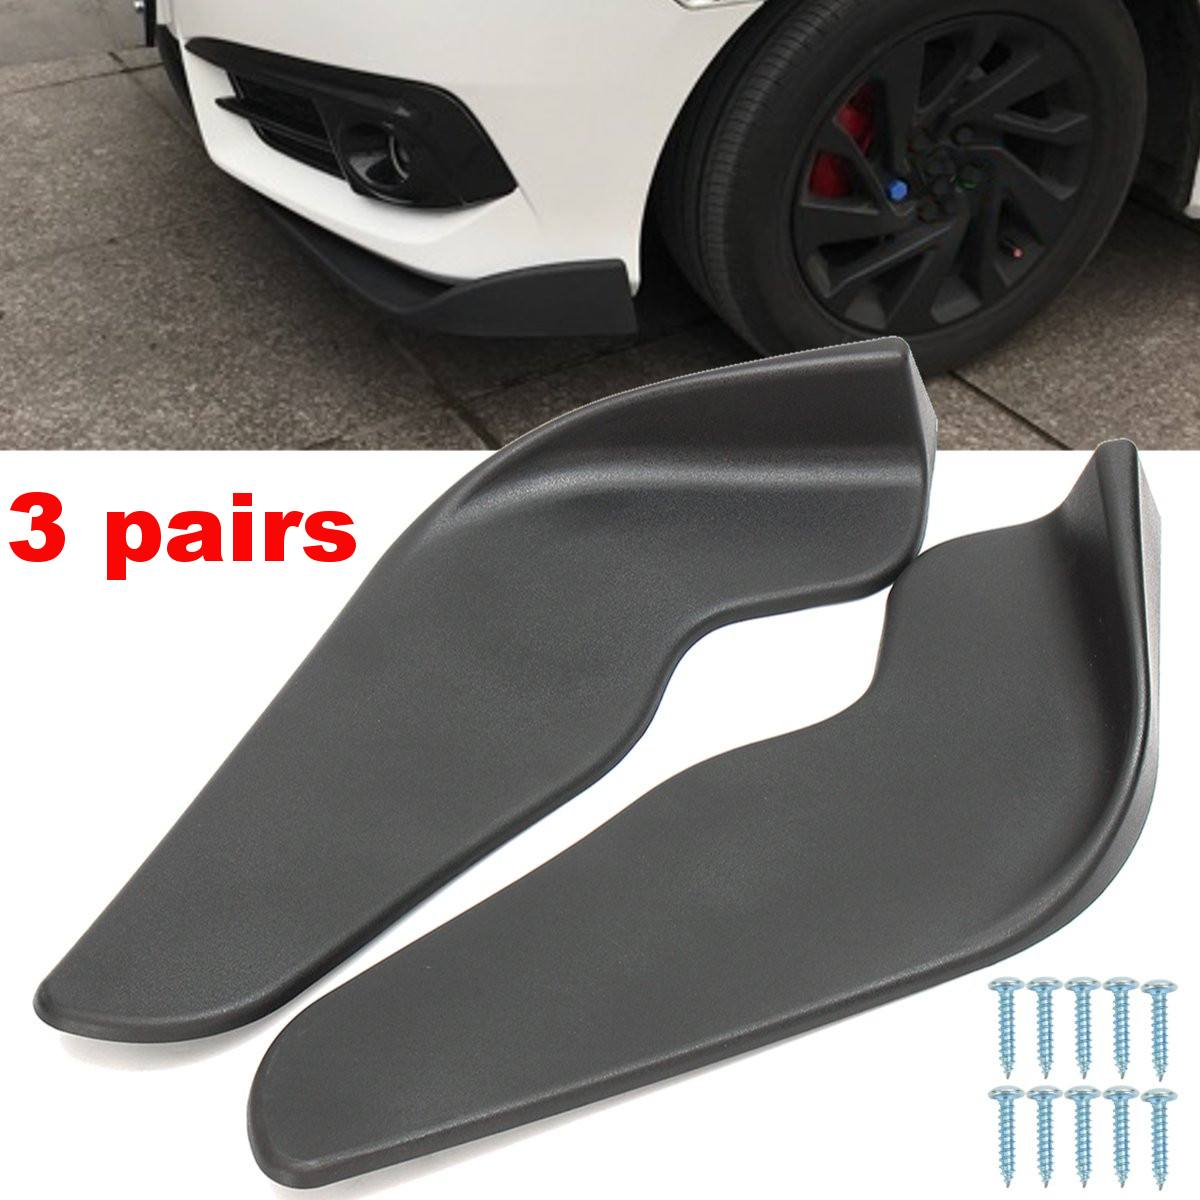 3 Pairs Black ABS Fit Front Bumper Lip Splitter Fin Air Knife Auto Body Kit Car Spoiler Accessory3 Pairs Black ABS Fit Front Bumper Lip Splitter Fin Air Knife Auto Body Kit Car Spoiler Accessory